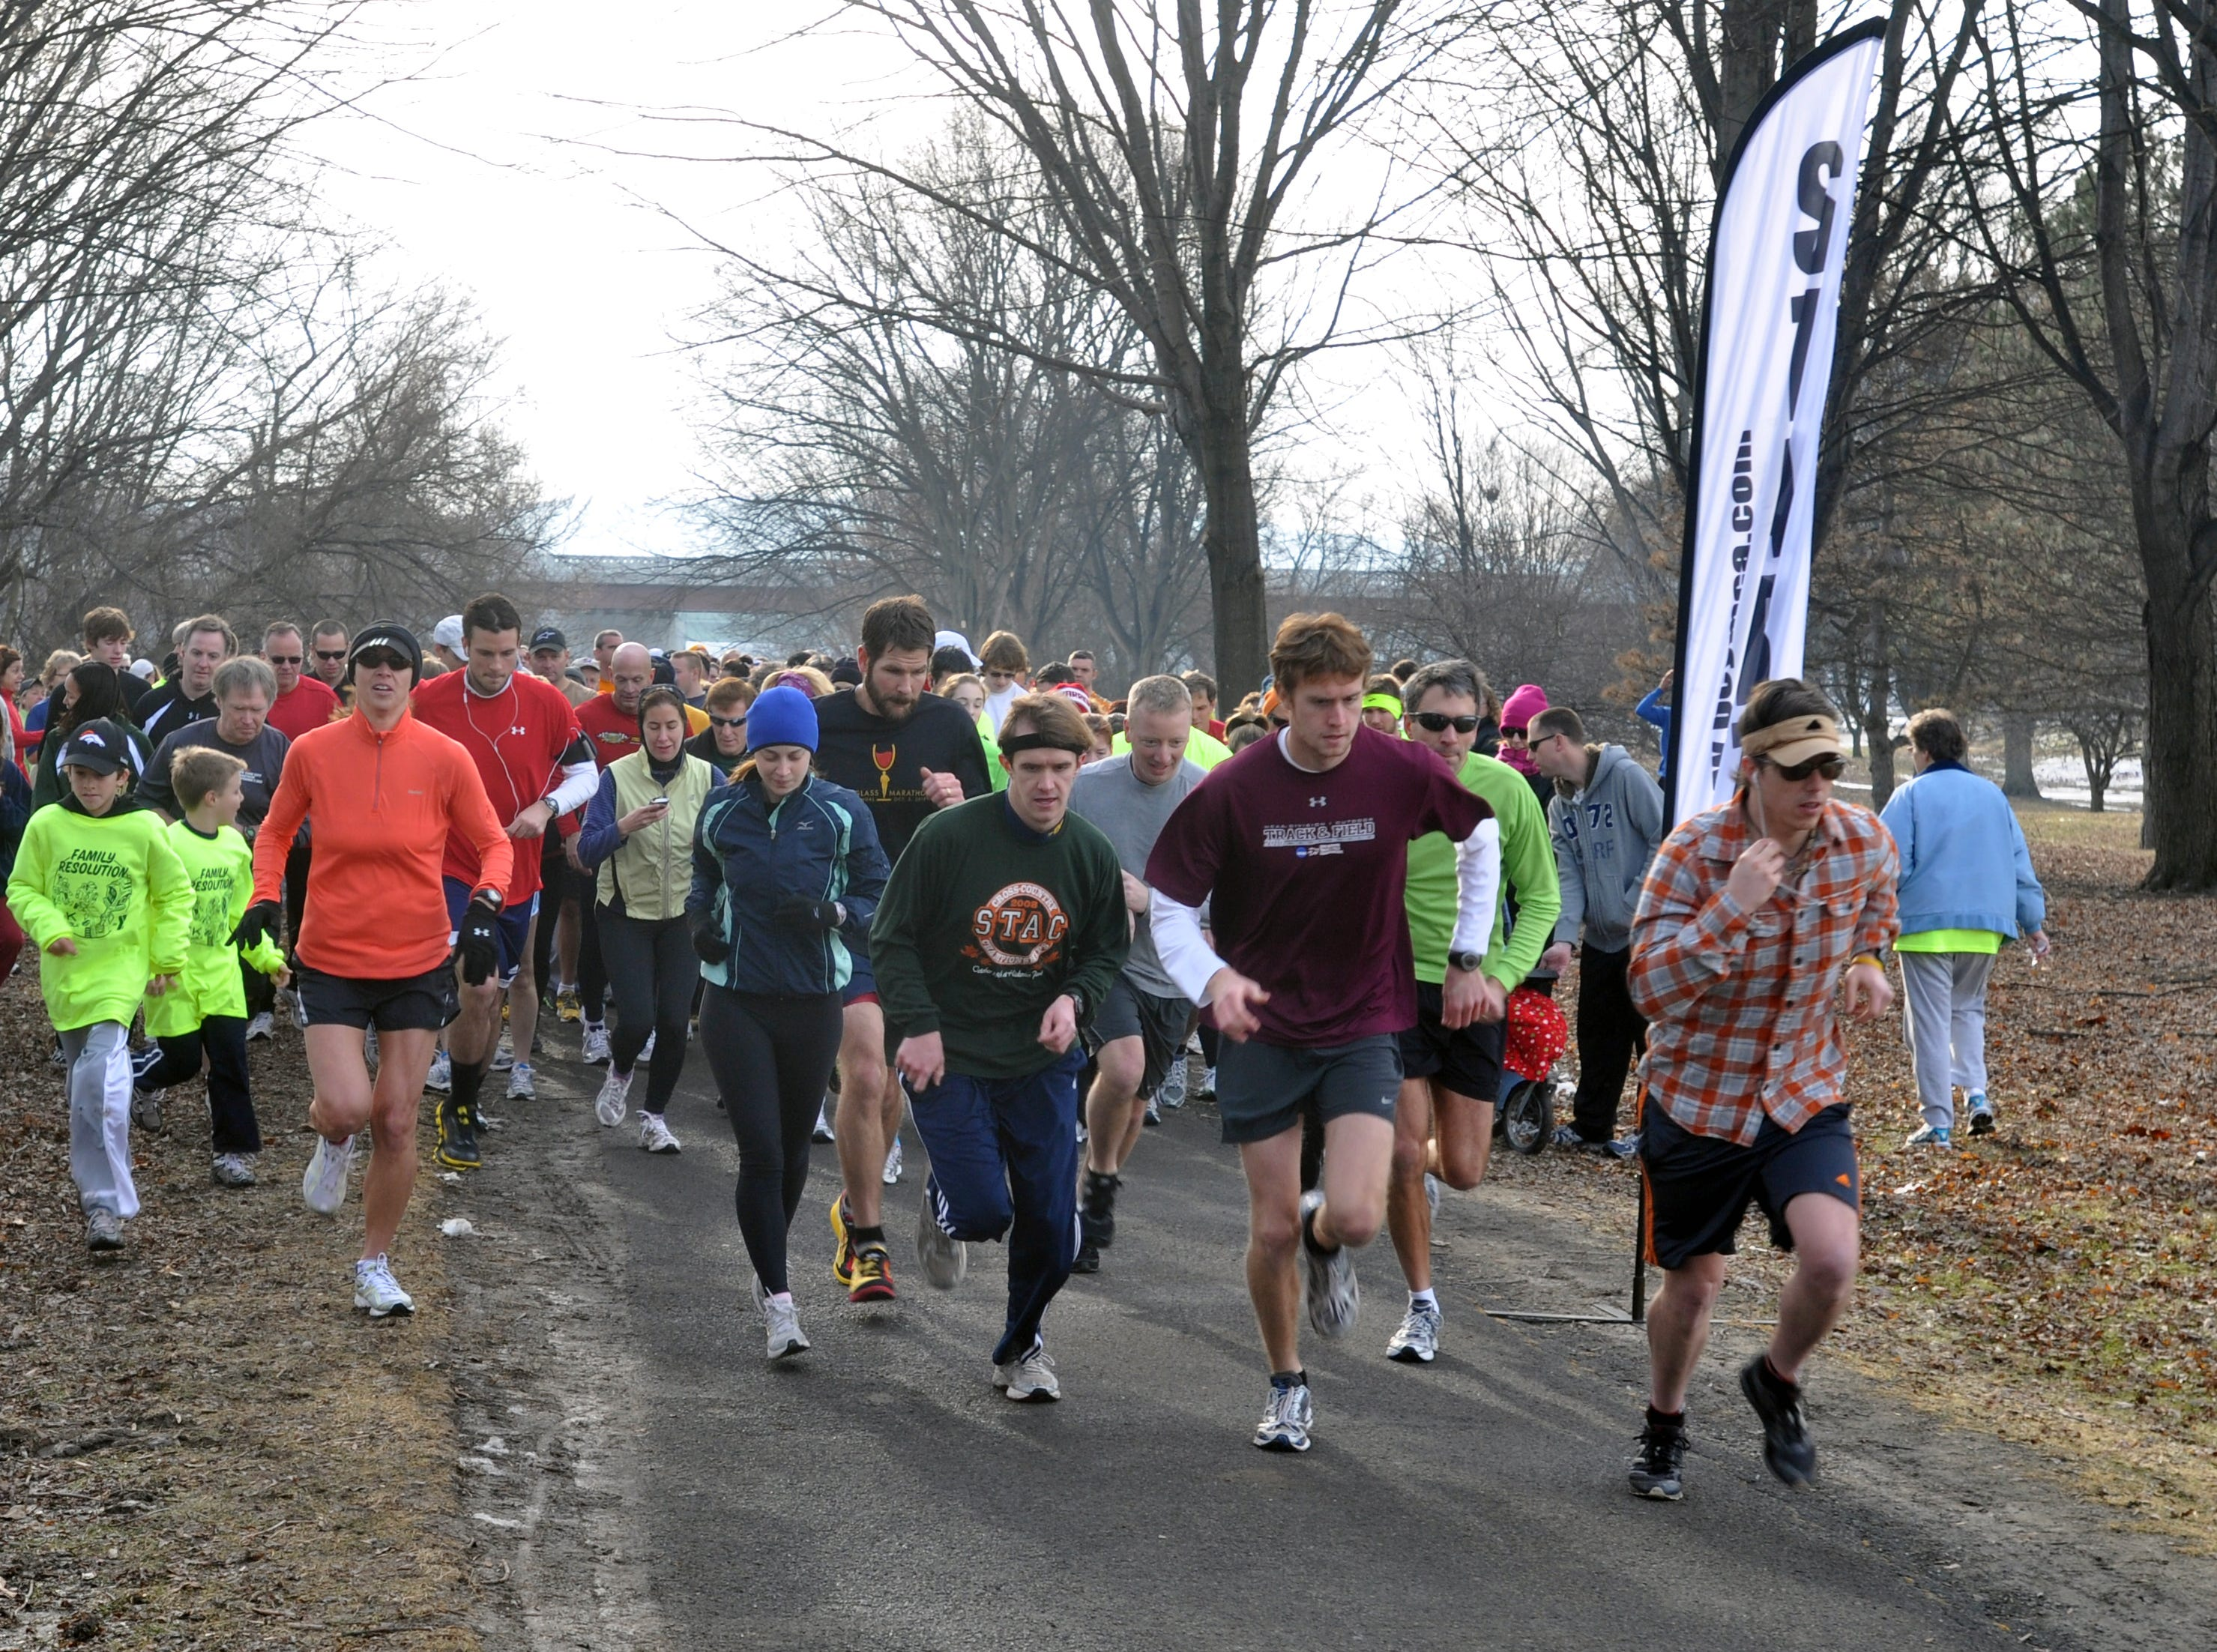 About 250 people participated in the 2010  Family Resolution 5K Fun Run/Walk in Otsiningo Park in the Town of Dickinson. The run, sponsored by the YMCA and Lourdes Hospital, is meant to promote family health and wellness.